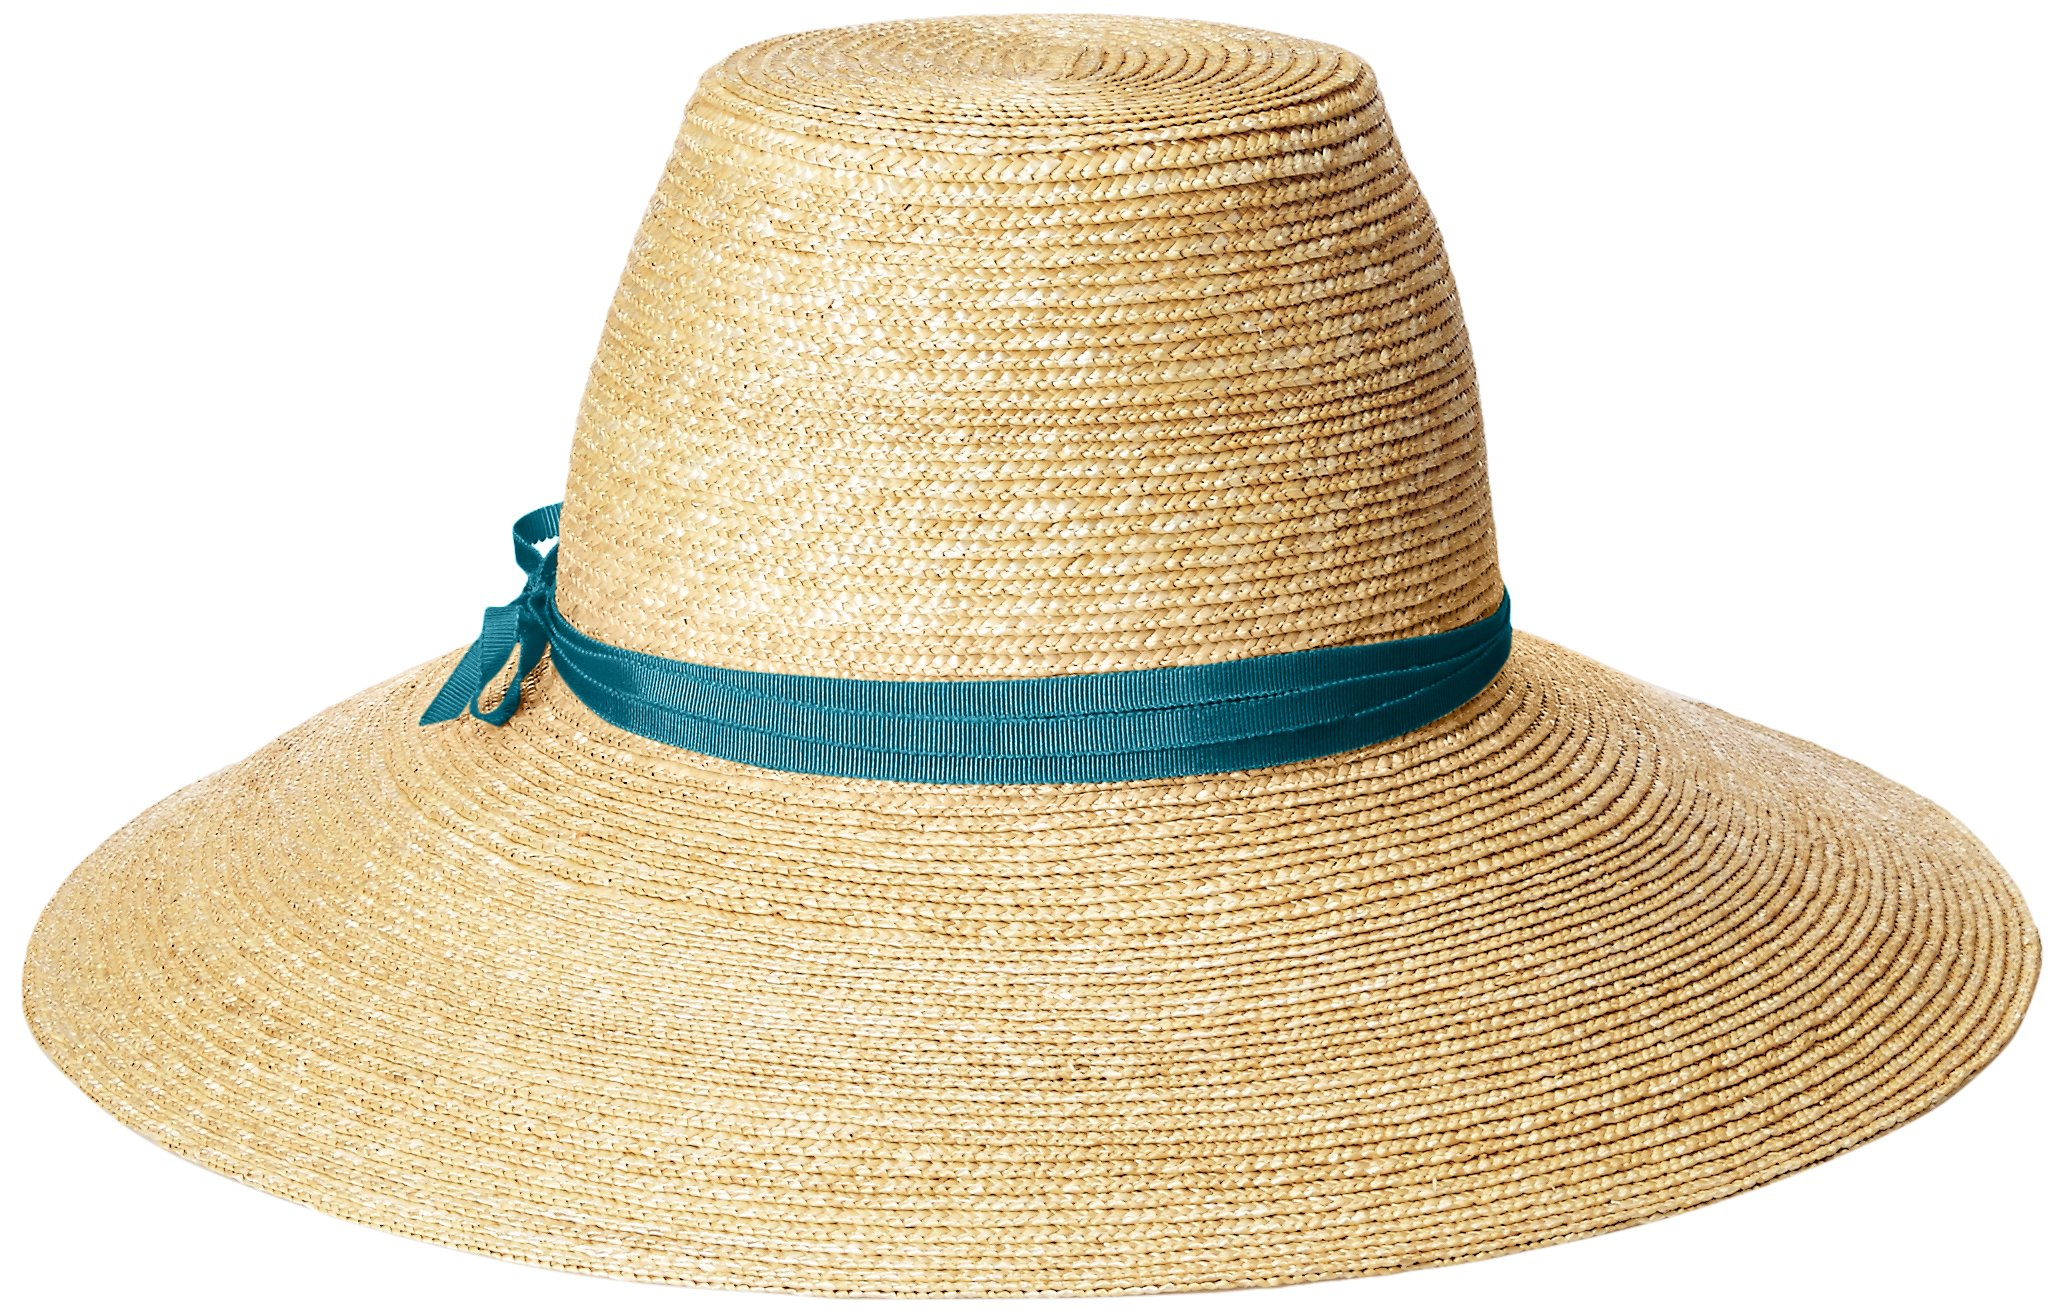 Gottex Women's Cote D'Azur Fine Milan Straw Sun Hat Rated, UPF 50+ for Max Sun Protection, Natural/Teal, Adjustable Head Size